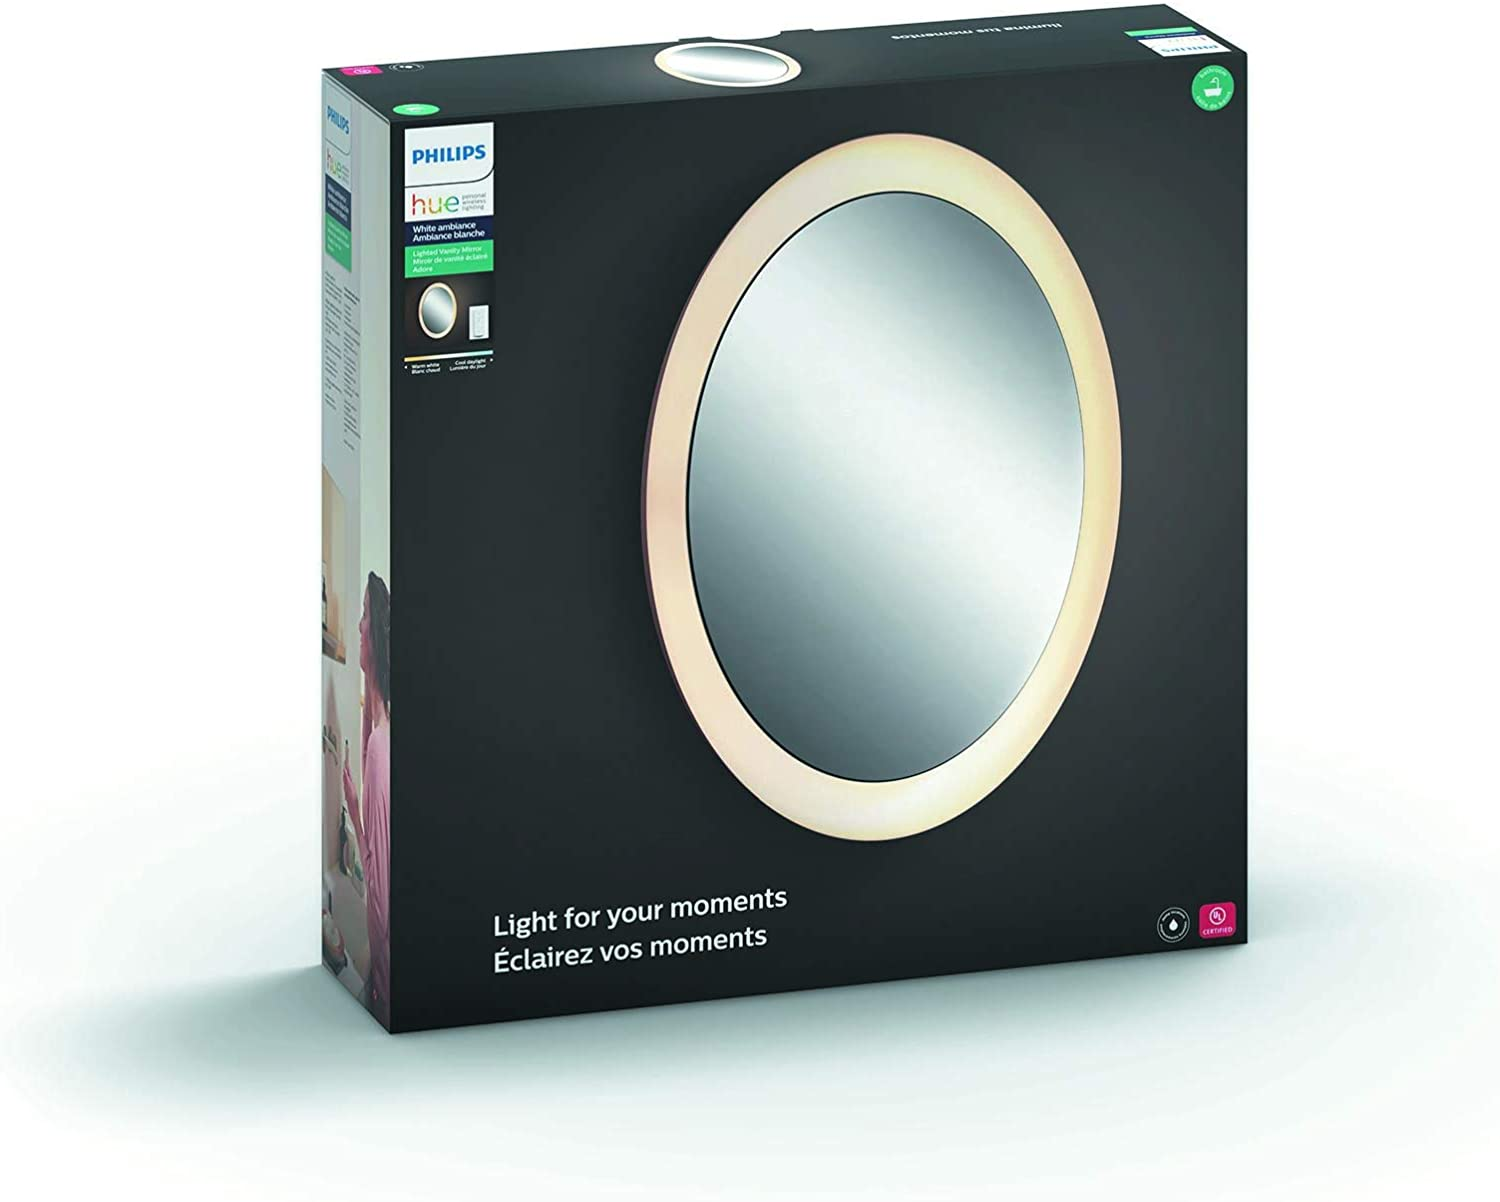 Philips Hue White Ambiance Adore Smart Lighted Mirror with Dimmer Switch (Requires Hue Hub, Works with Amazon Alexa, HomeKit & Google Assistant)